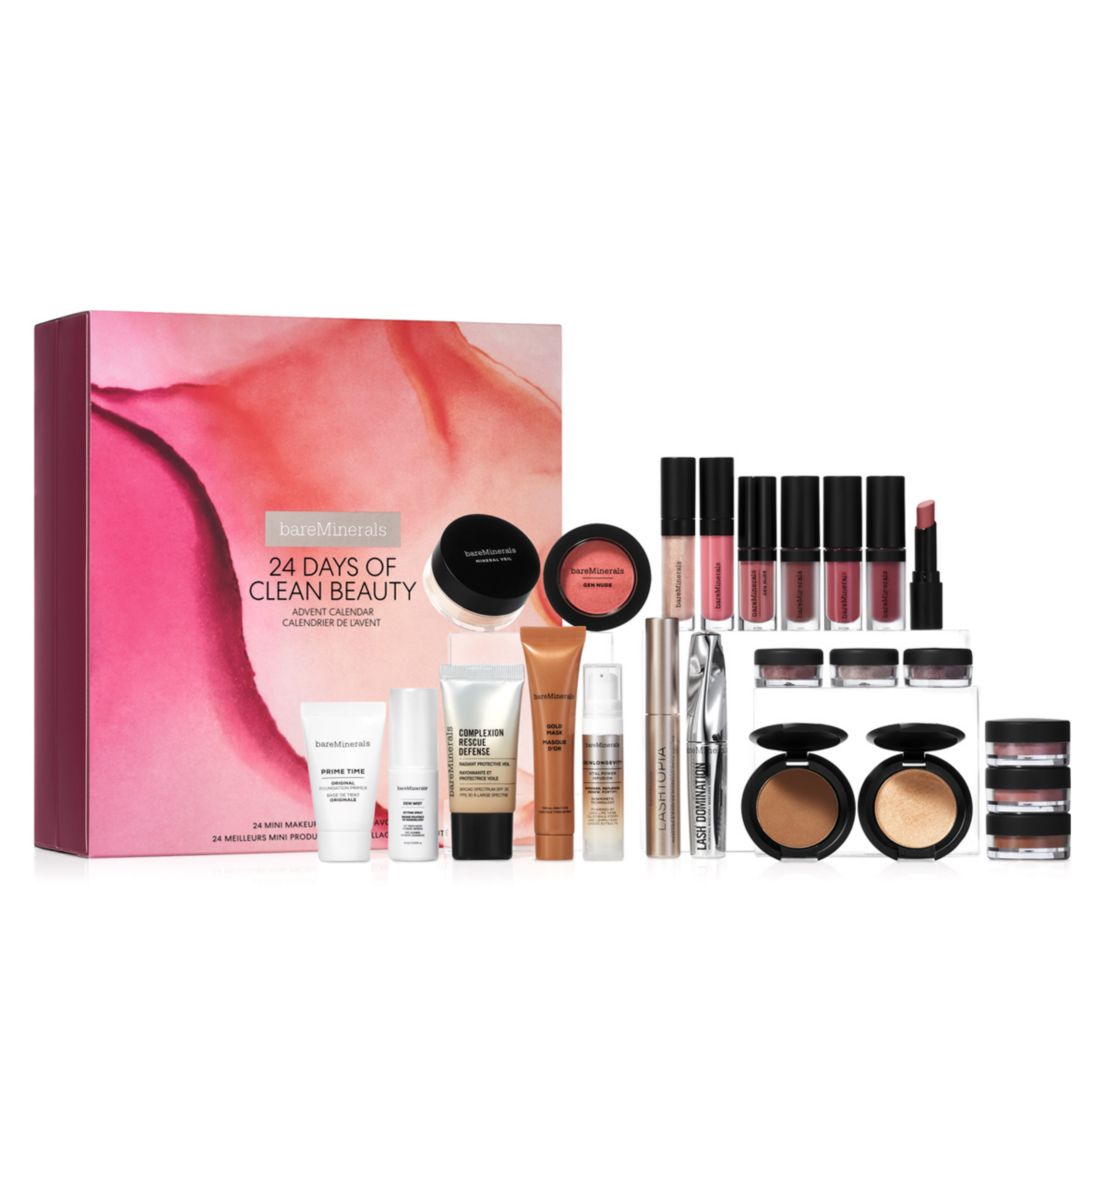 Best cruelty free beauty advent calendars 2019 - bareMinerals